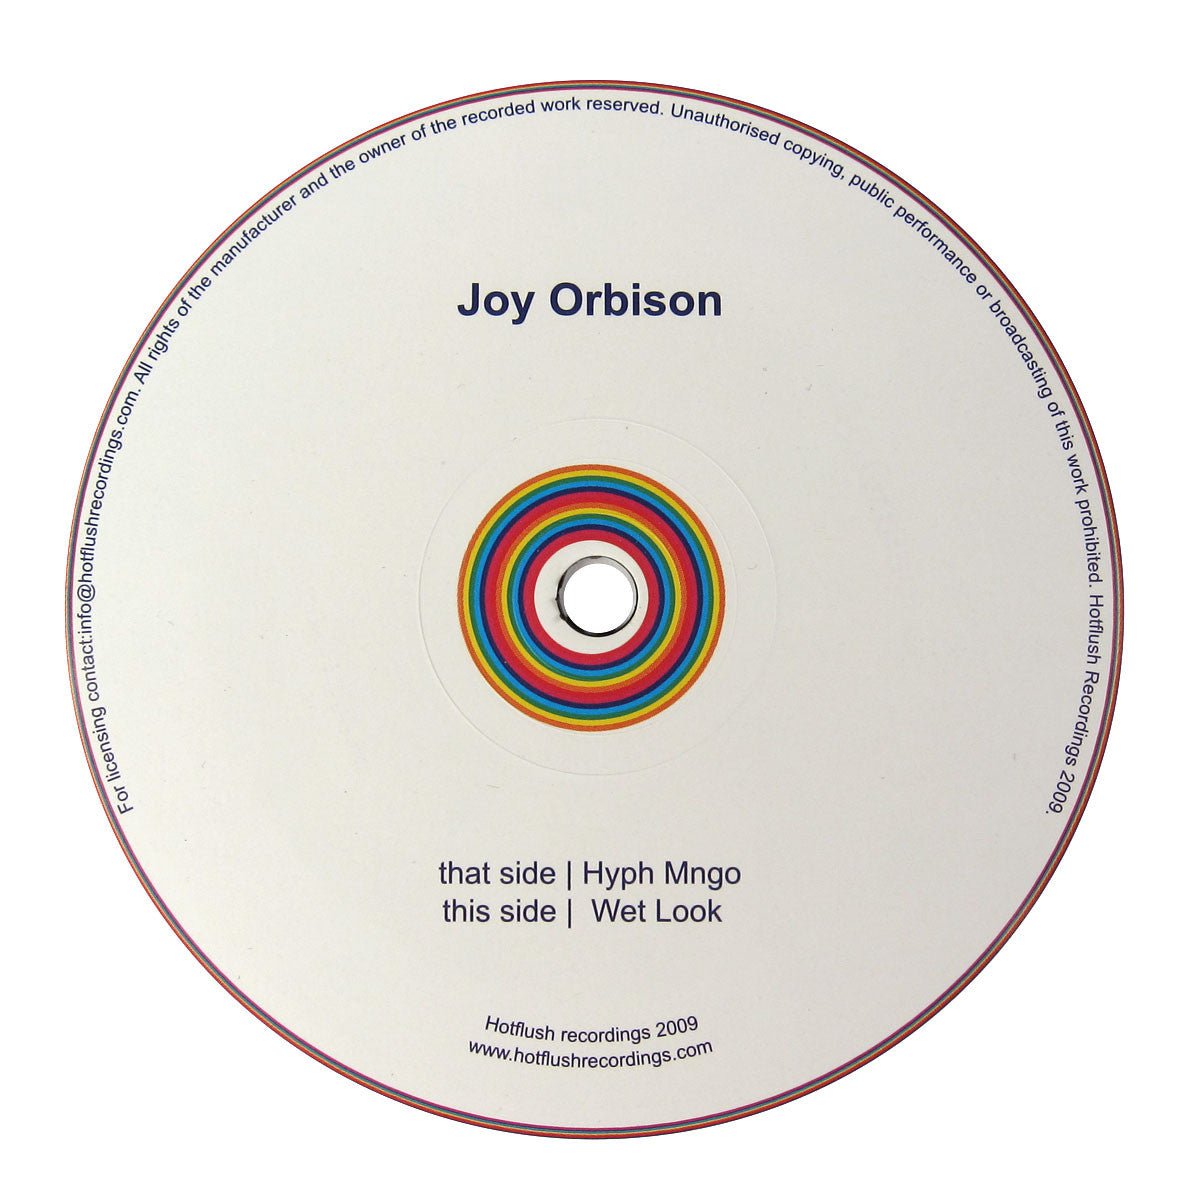 Joy Orbison: Hyph Mngo / Wet Look Vinyl 12